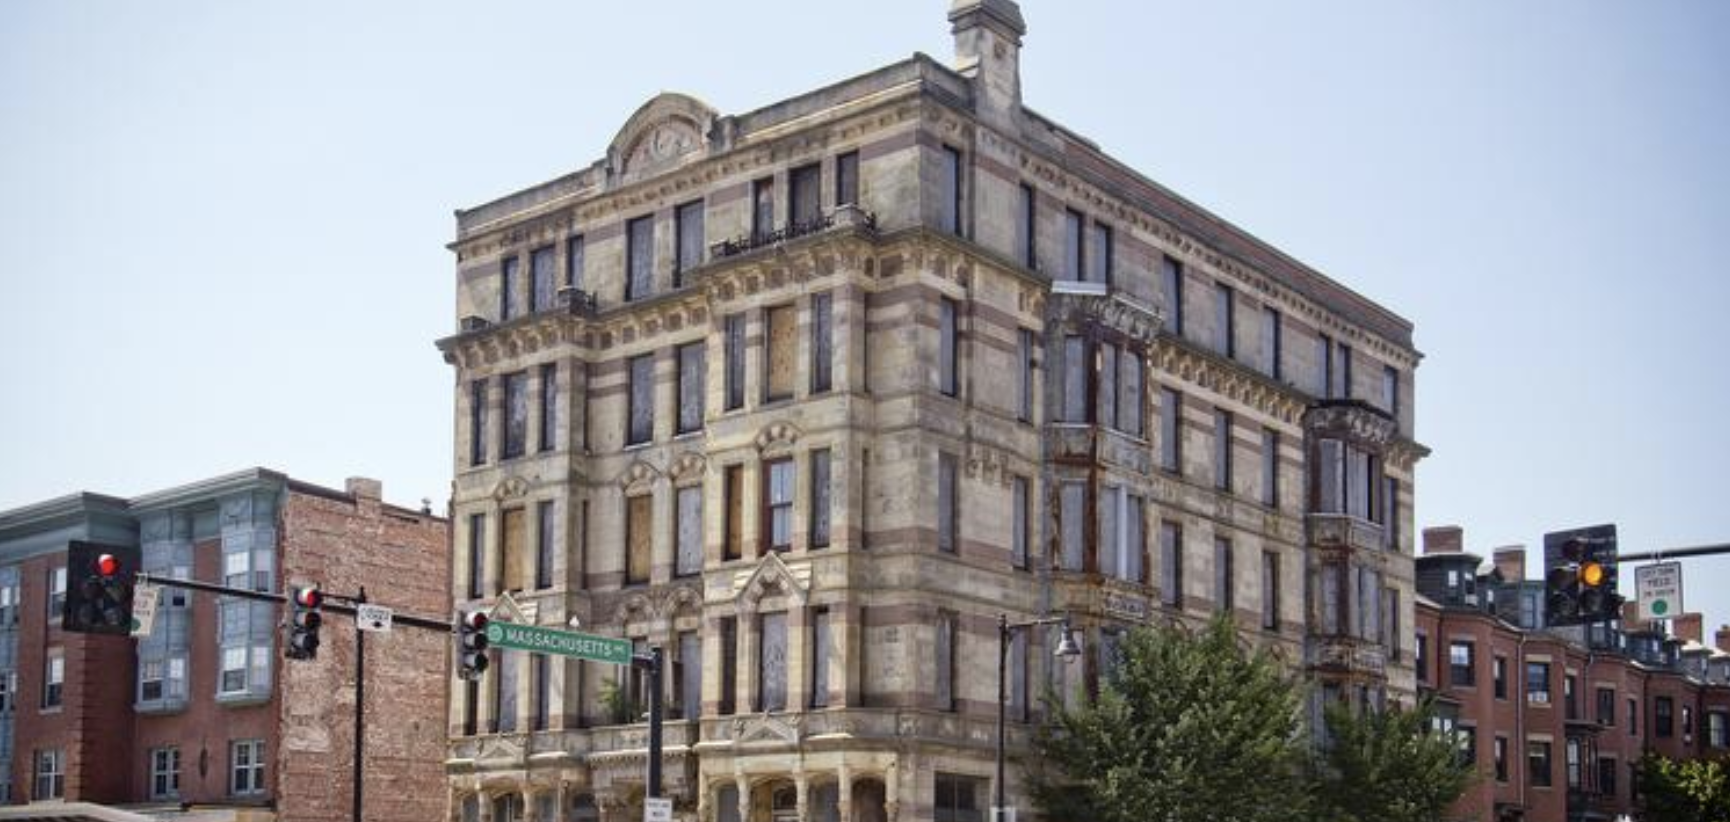 NEW PLAN WOULD RESTORE LONG-VACANT ALEXANDRA HOTEL IN BOSTON'S SOUTH END - The Church of Scientology had long planned a renovation of the Alexandra Hotel property into its headquarters. But then it put the former hotel up for sale in 2015.